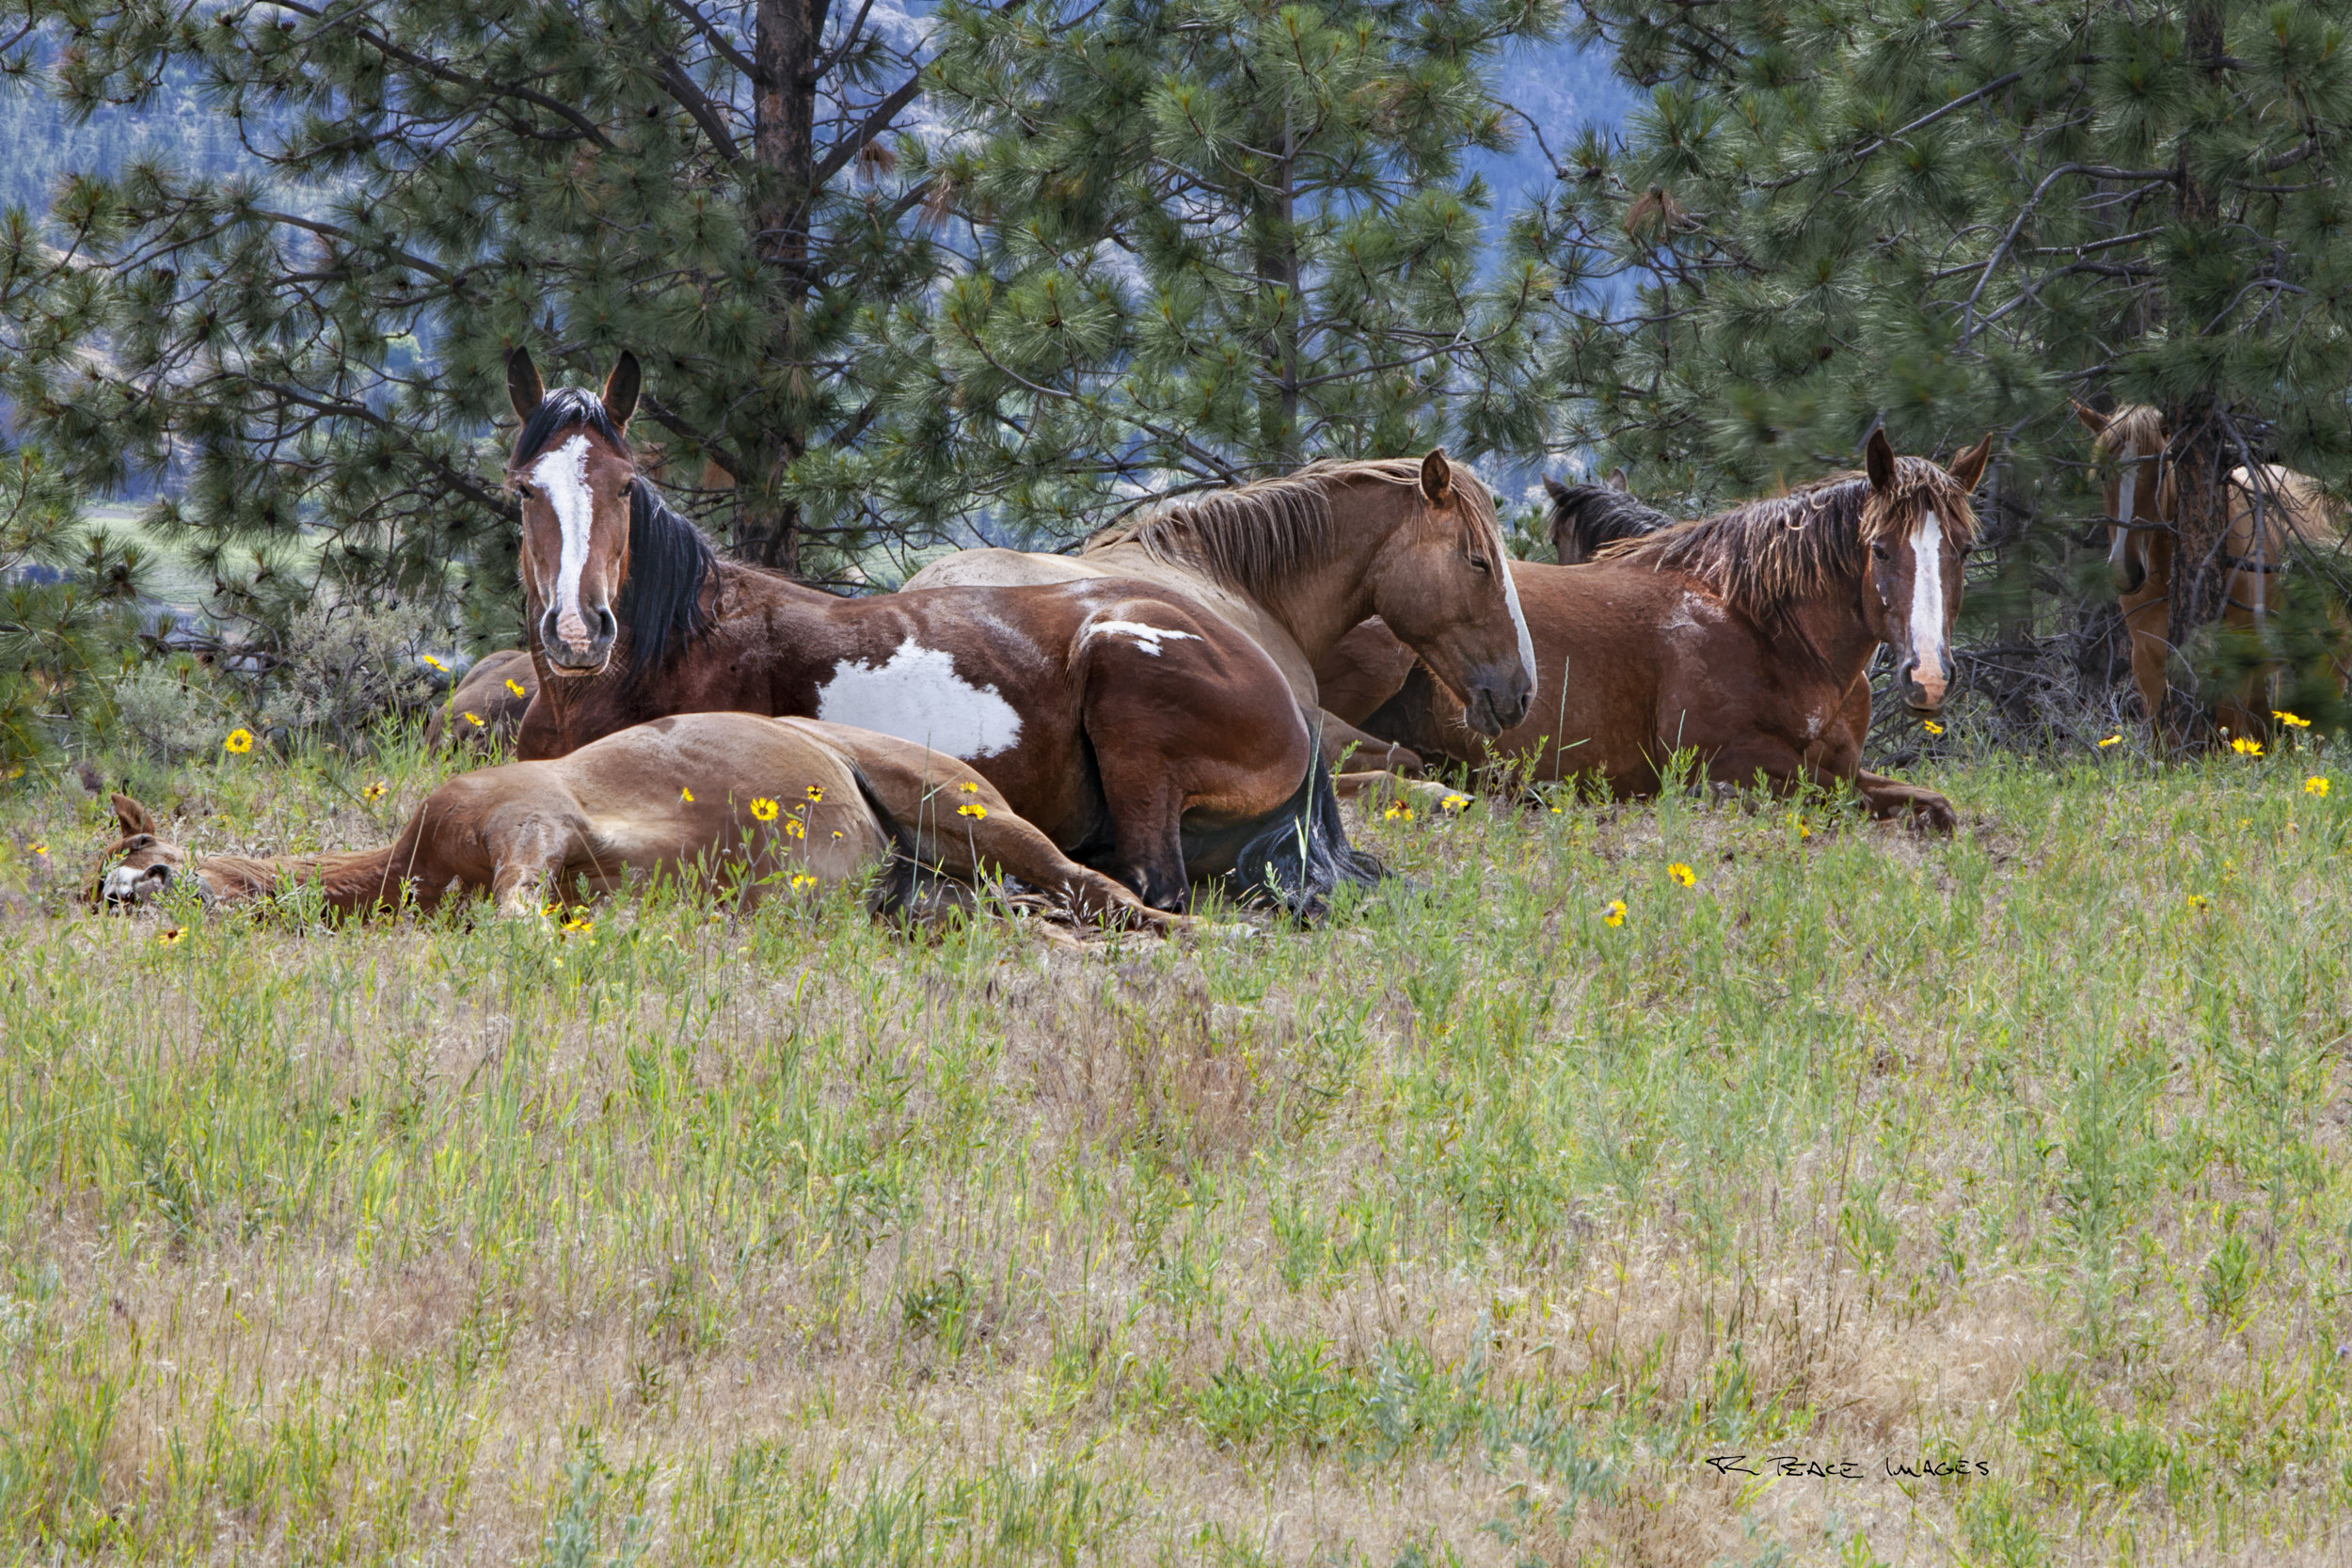 Syilx wild horses slumber in the warm spring sunshine